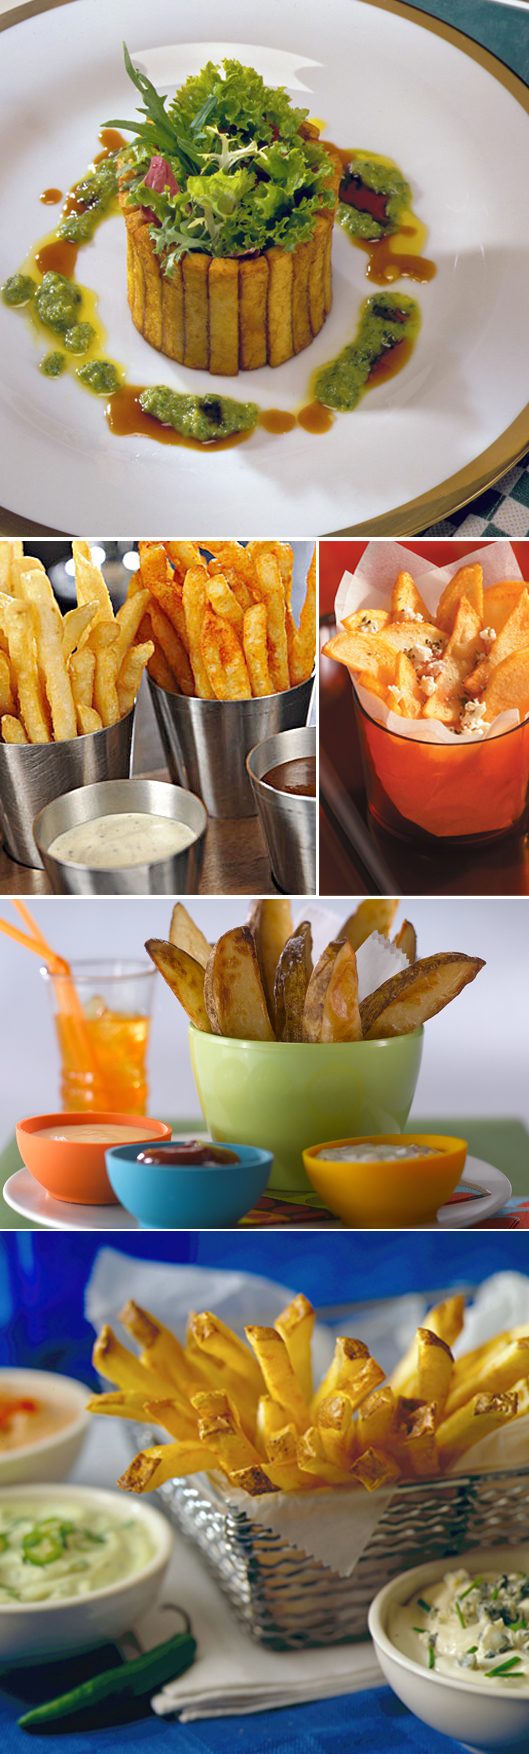 French Fries Can Be Elegant or Casual